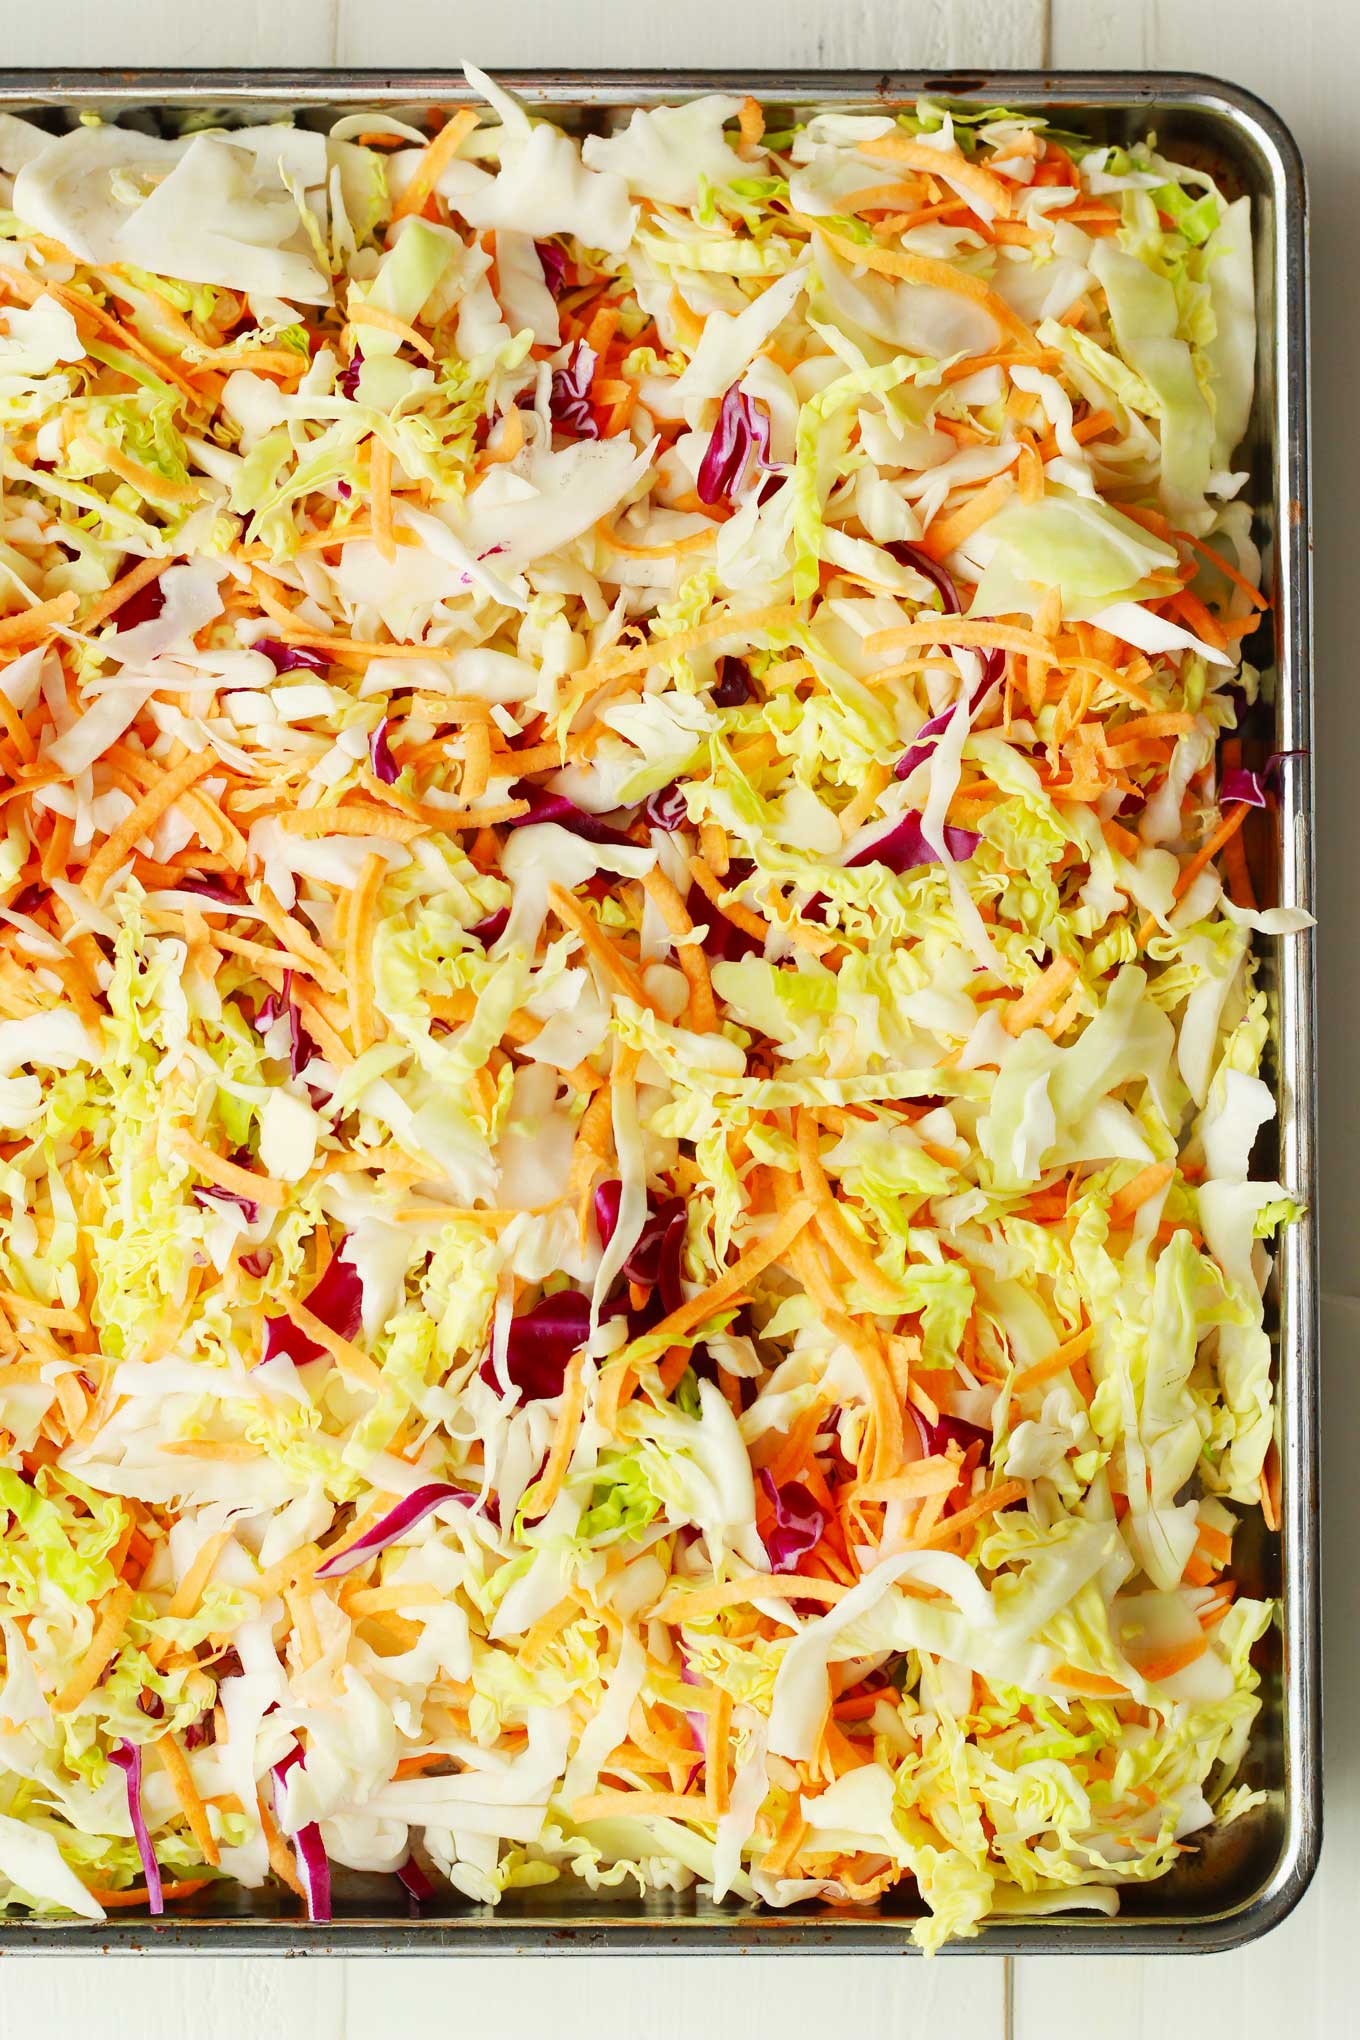 Roasted Winter Slaw | Shredded cabbage and sweet potatoes are roasted to savory side dish perfection in 20 minutes! Vegan, gluten-free, plant-based | http://eatwithinyourmeans.com